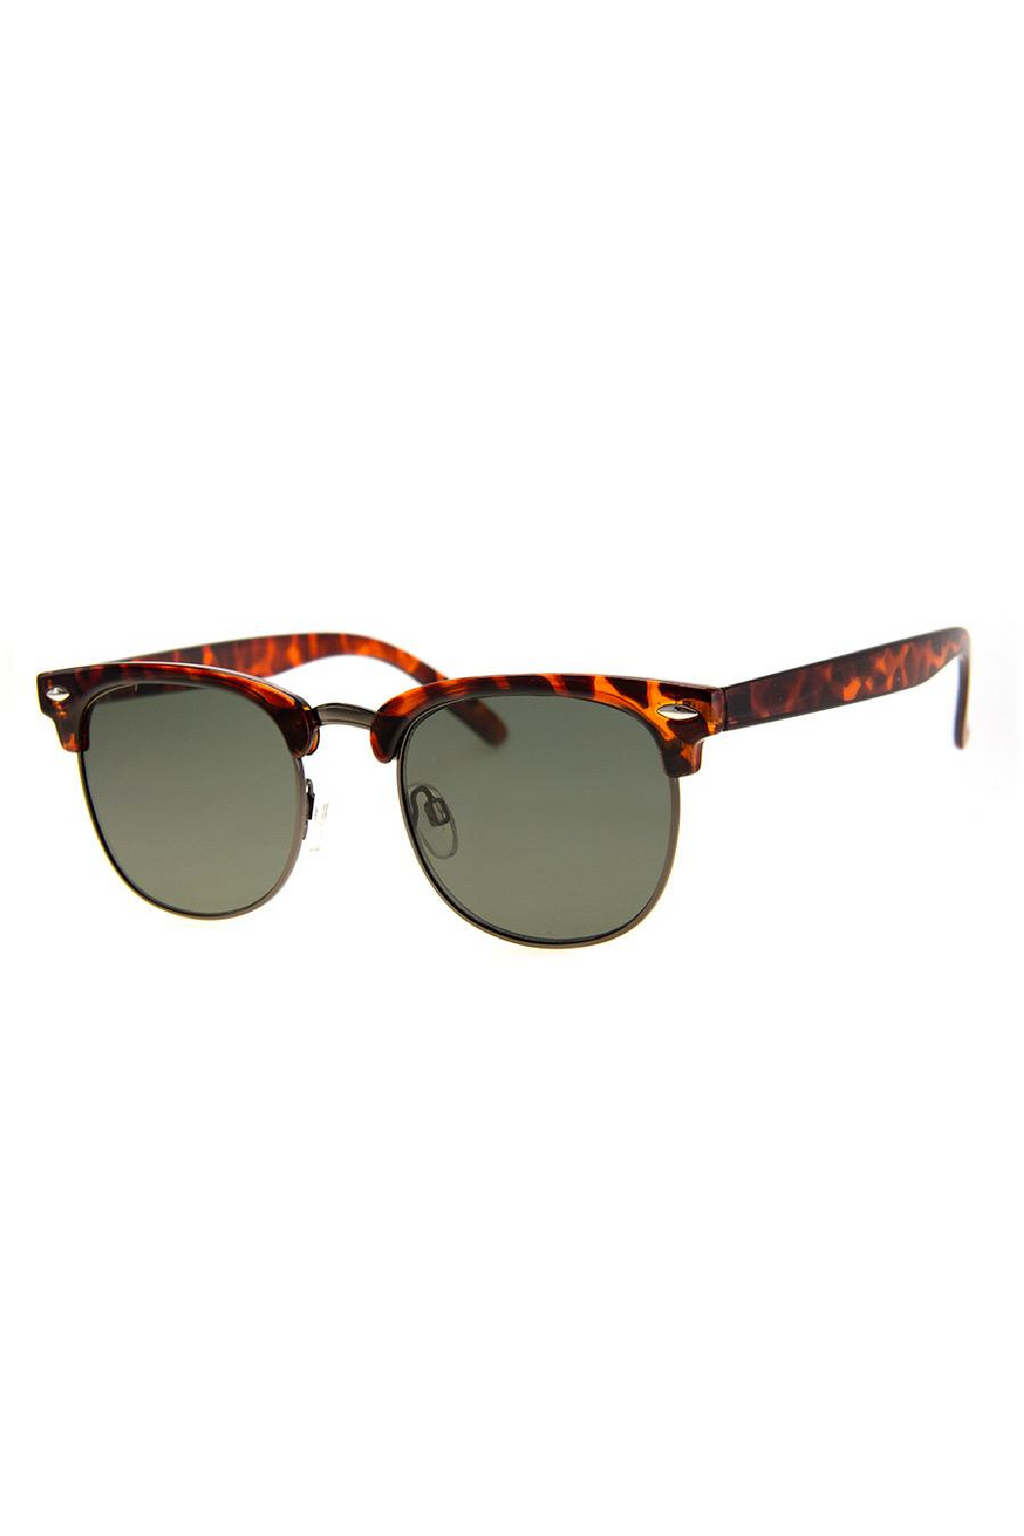 Schedule Sunnies - Tortoise